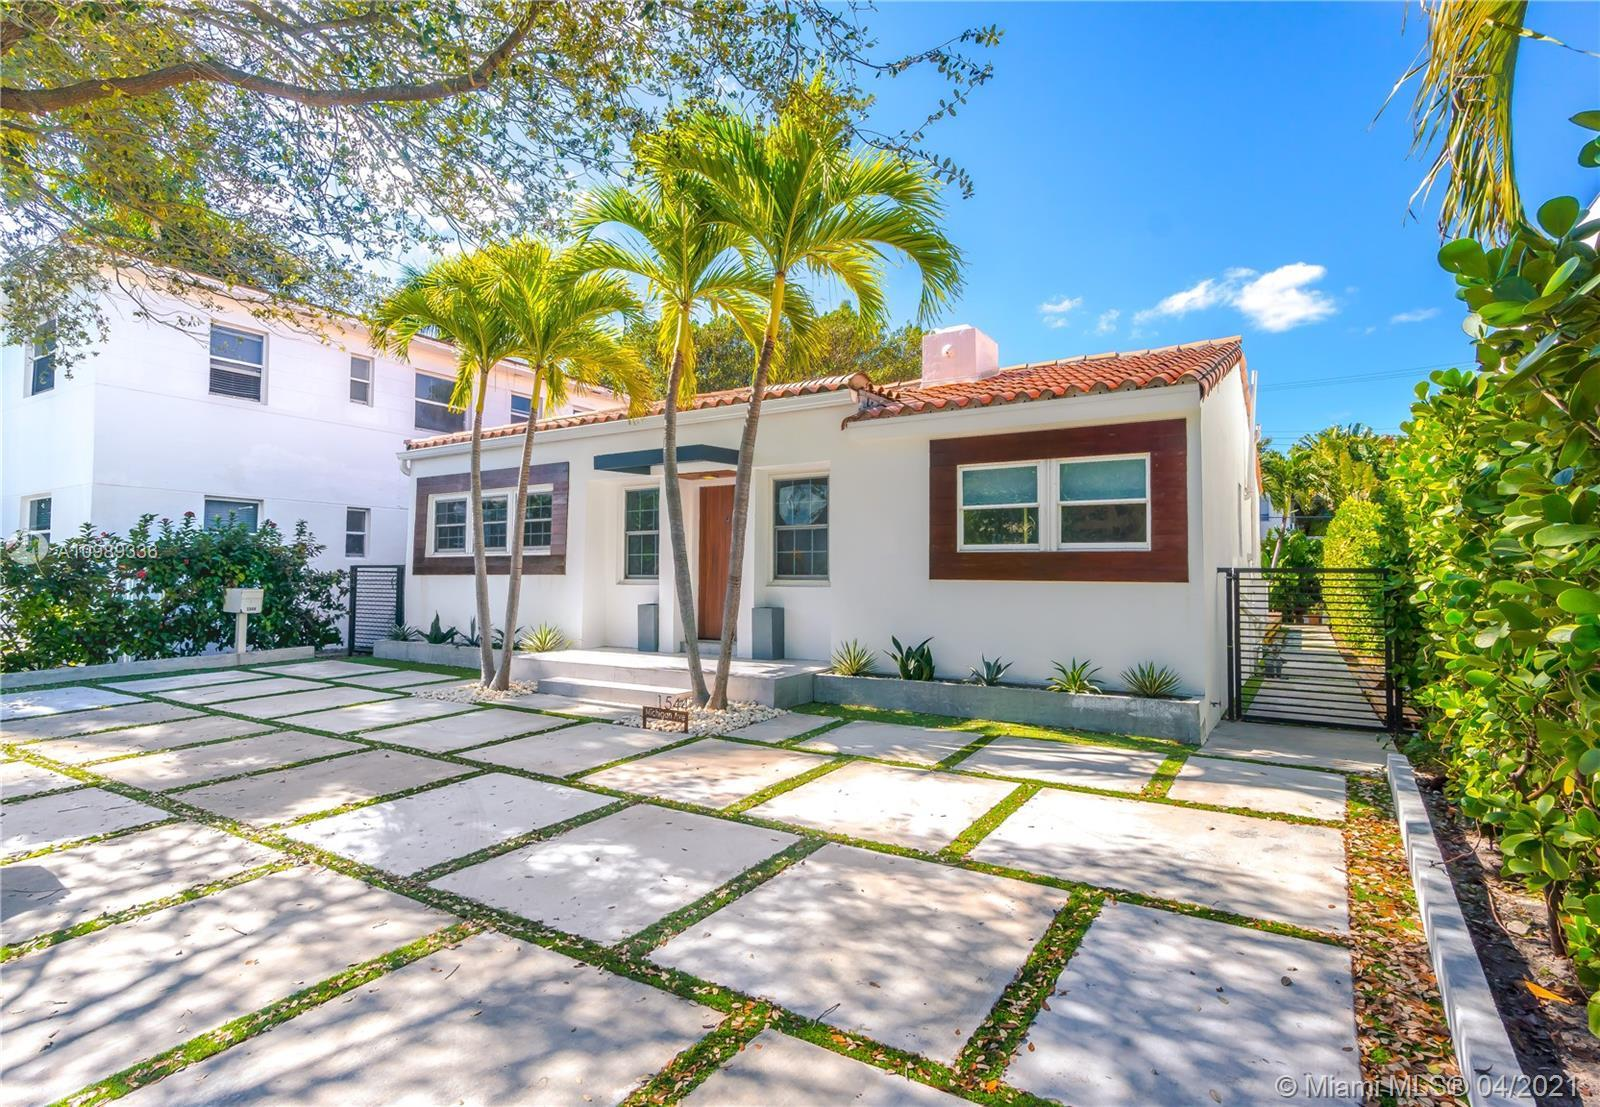 Miami Beach, a step away from Lincoln Road, a few blocks from the beach. Remodeled with a contempora